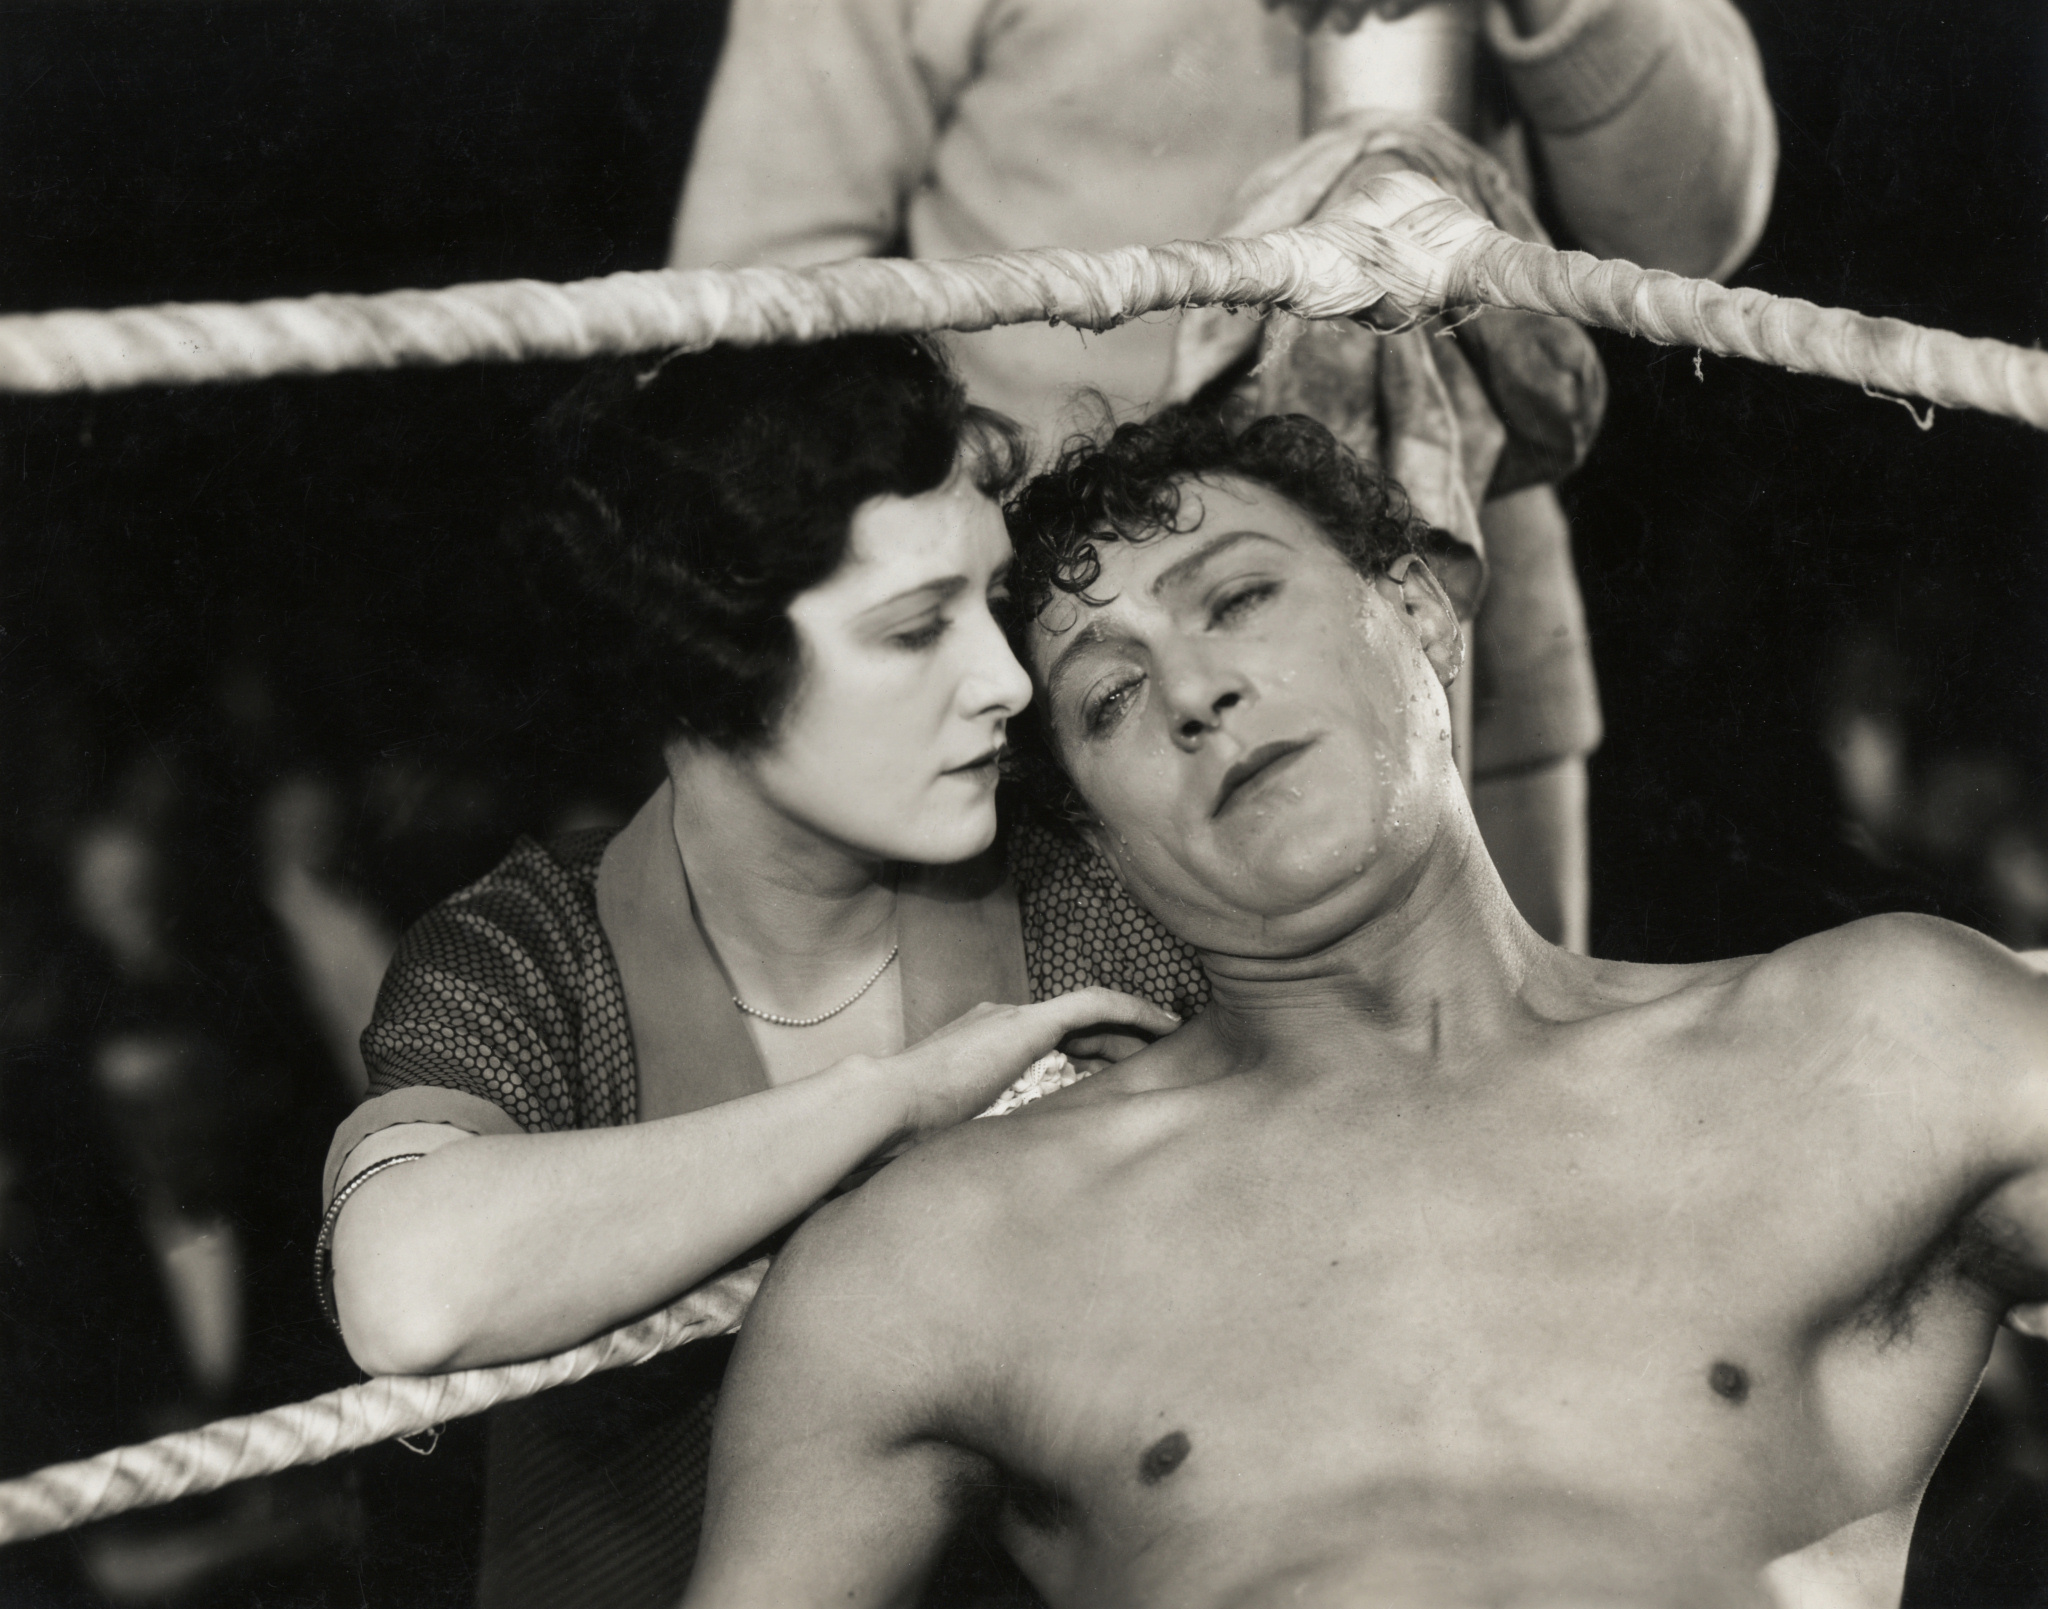 Lillian Hall-Davis and Carl Brisson in The Ring (1927, dir. Alfred Hitchcock)